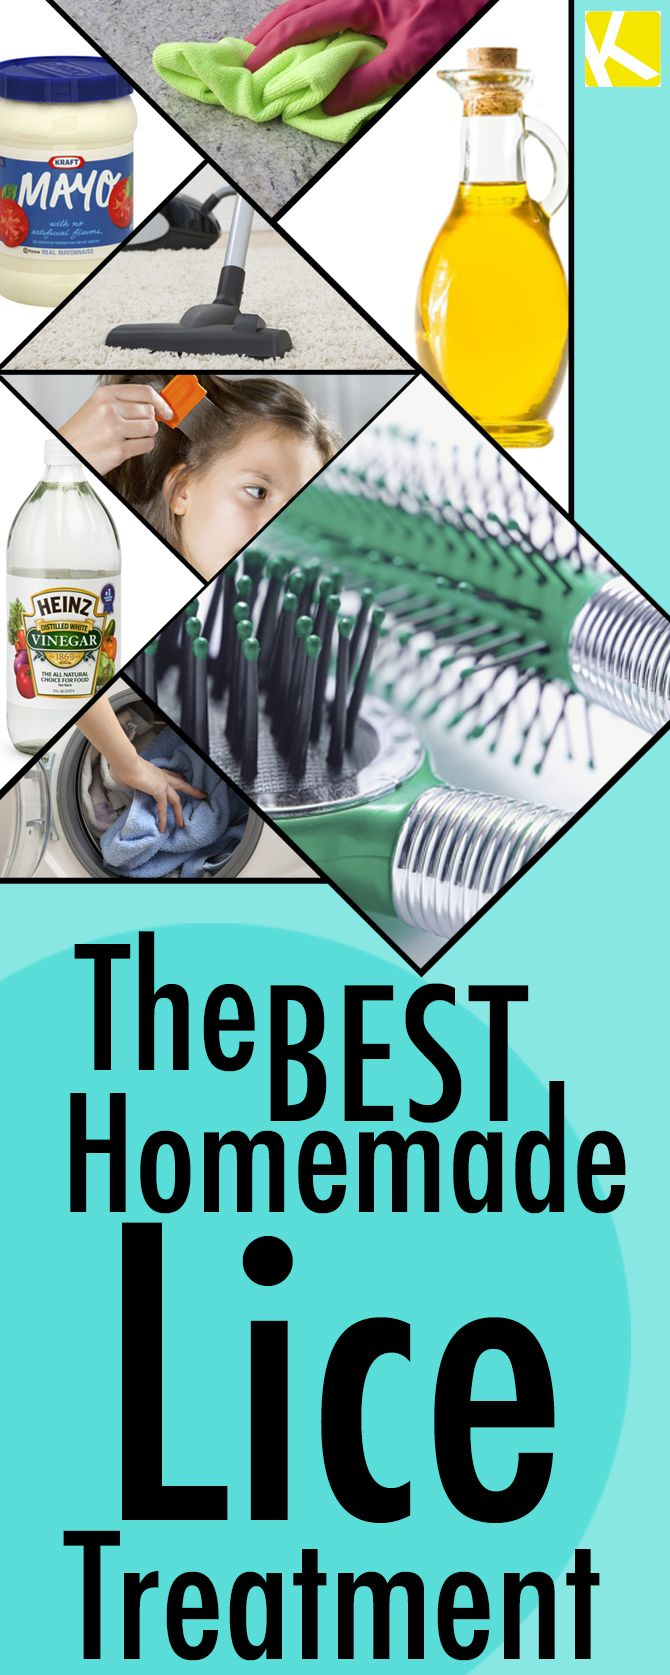 The Best Homemade Lice Treatment